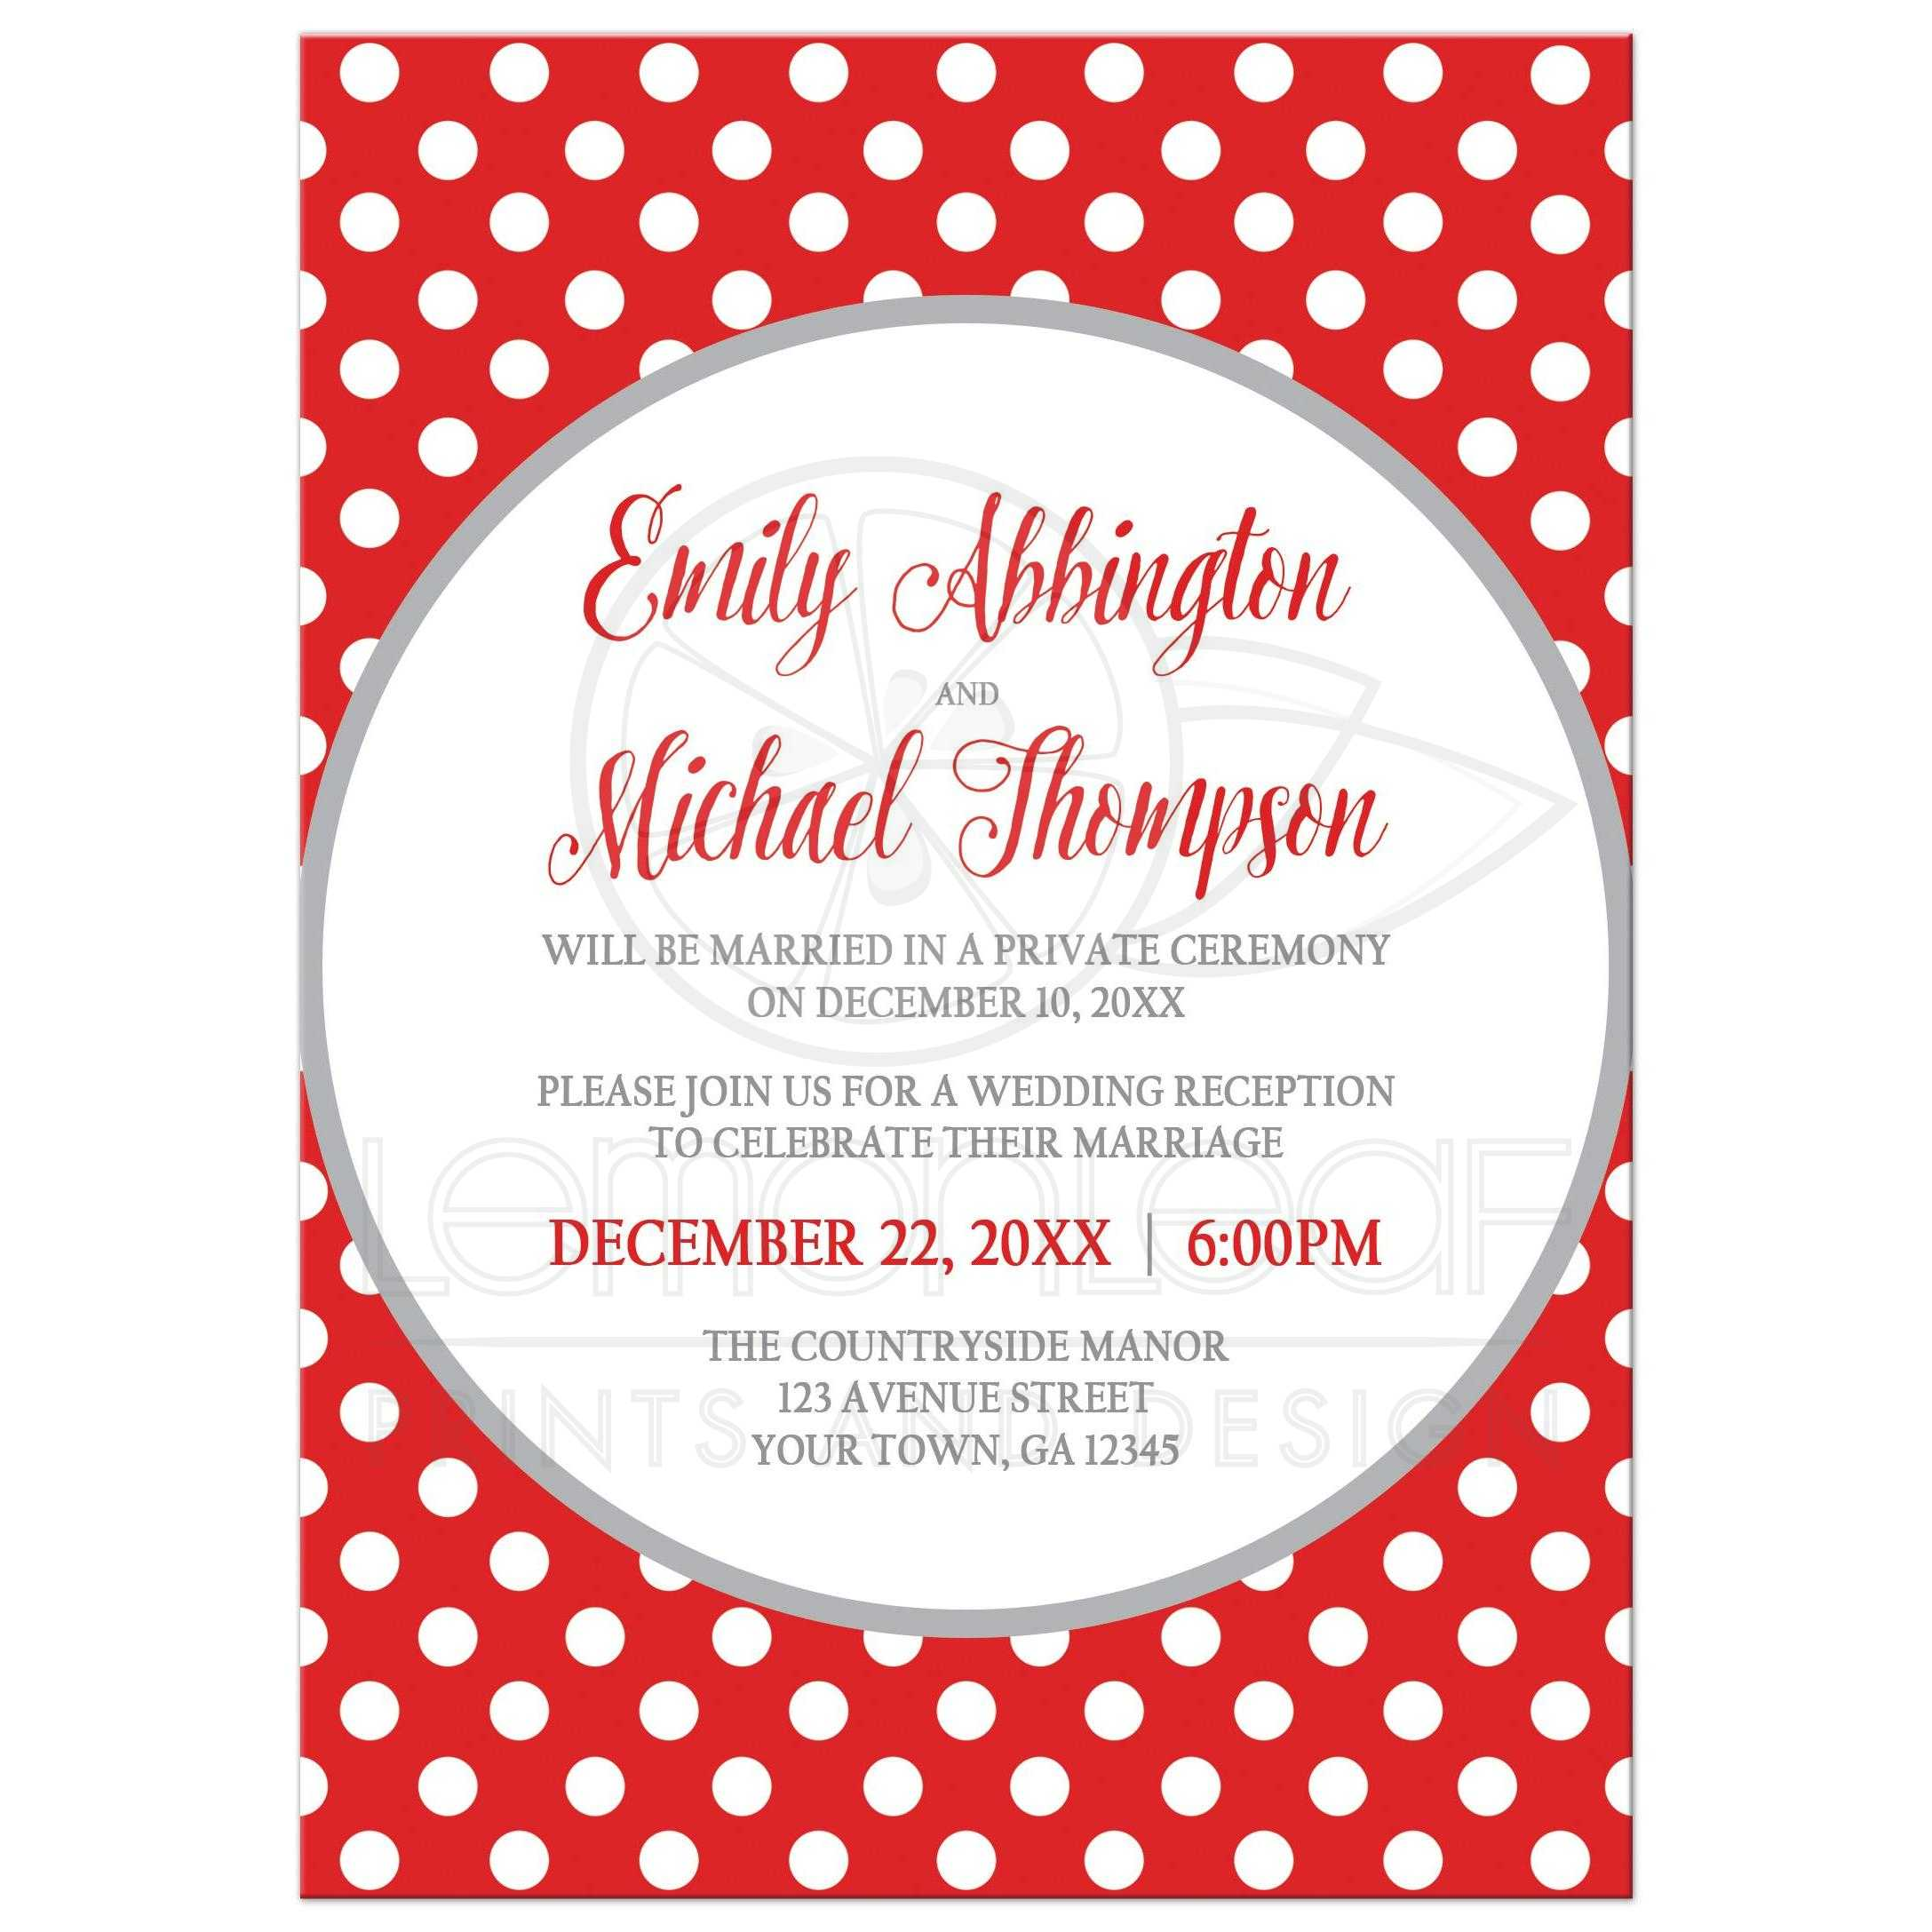 Pokadot Invitations Roho 4senses Co